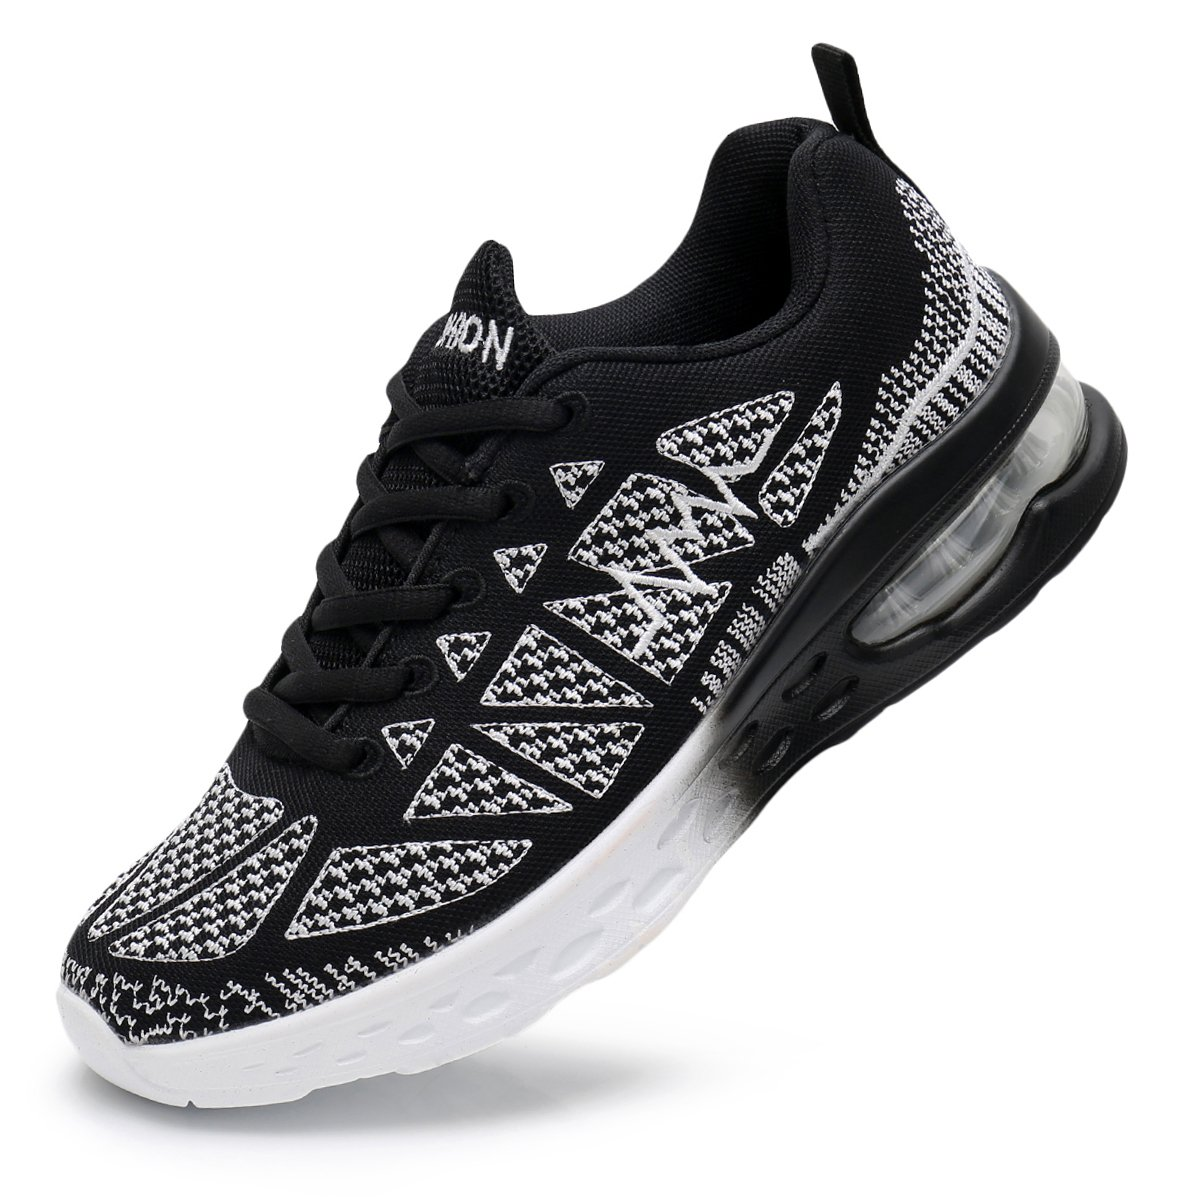 MEHOTO Womens Fashion Walking Shoes Sport Air Fitness Workout Gym Jogging Running Sneakers Black 9 B(M) US